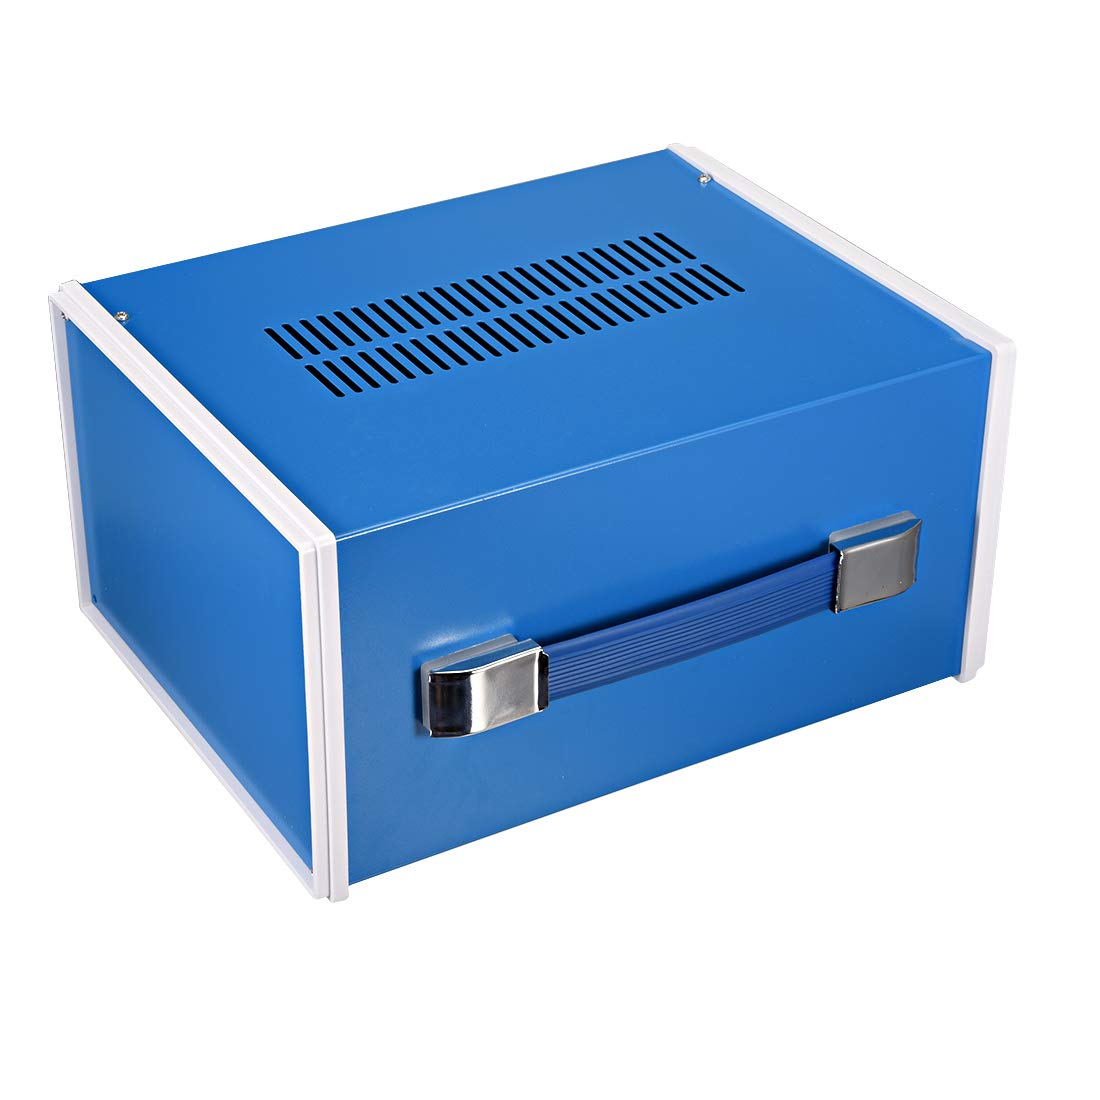 uxcell 270140210mm 10.635.518.27inch Metal Blue Project Junction Box Enclosure Case with Handle